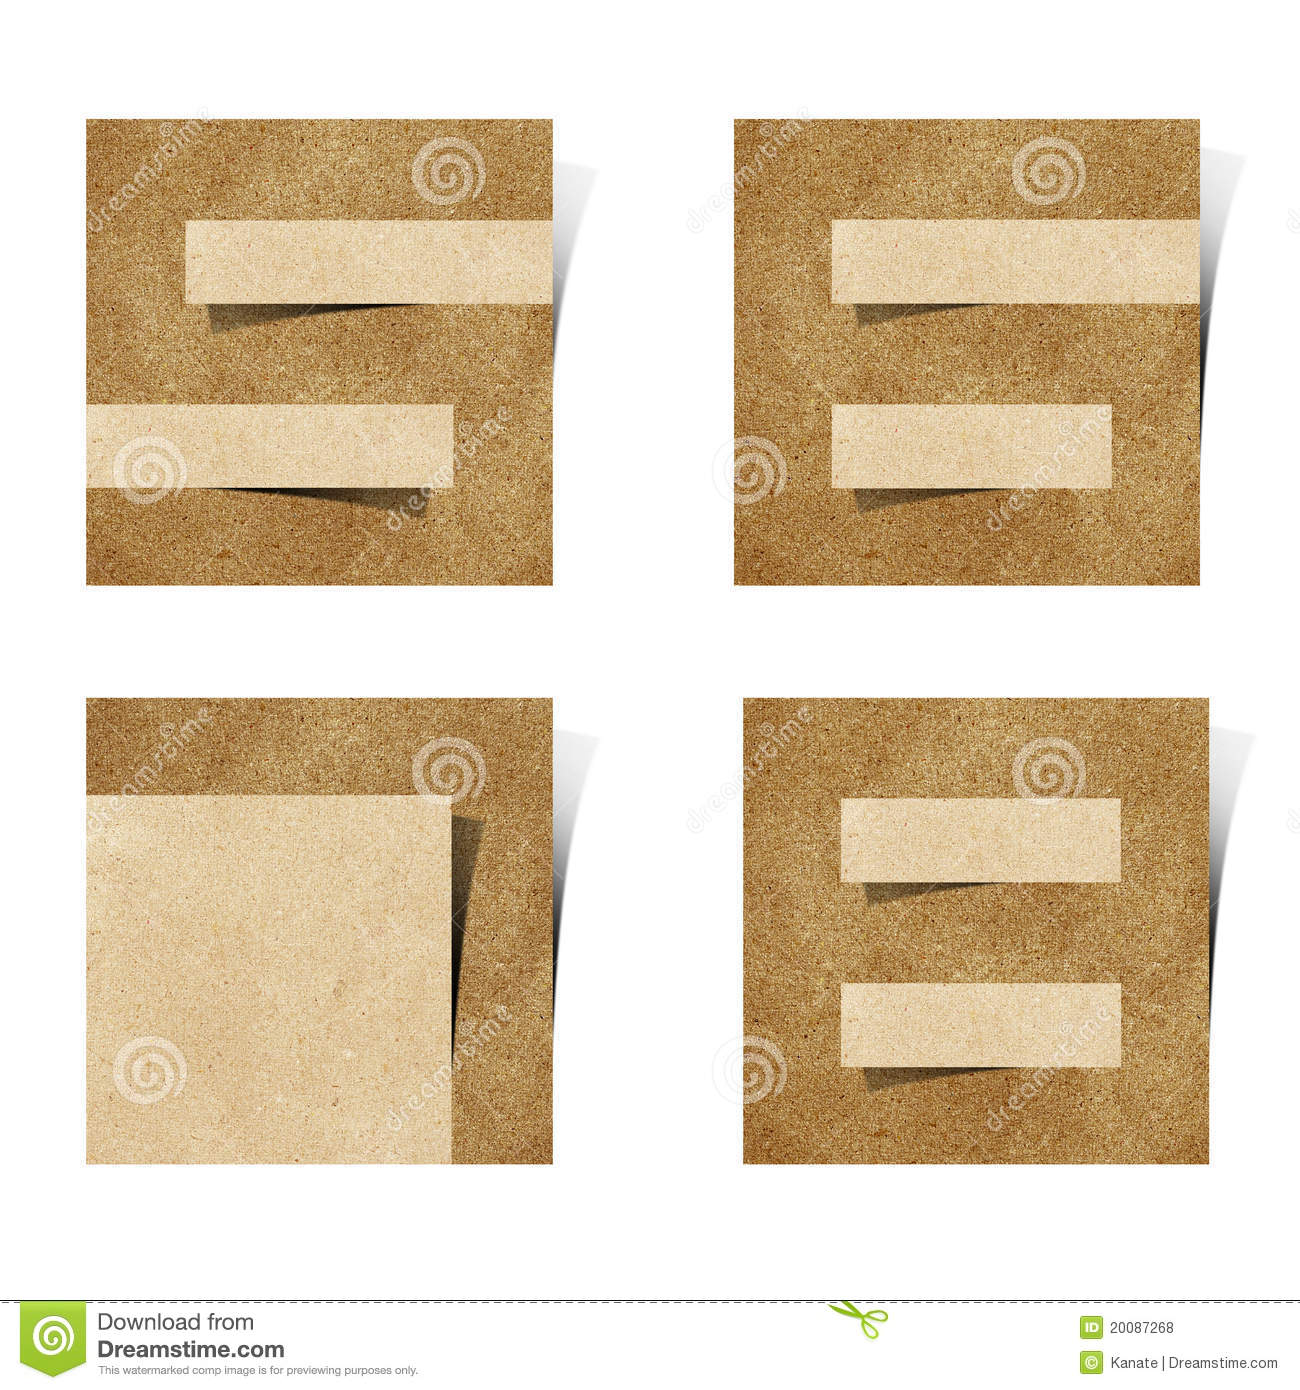 Origami alphabet letters recycled paper royalty free stock for Alphabet letters cardboard